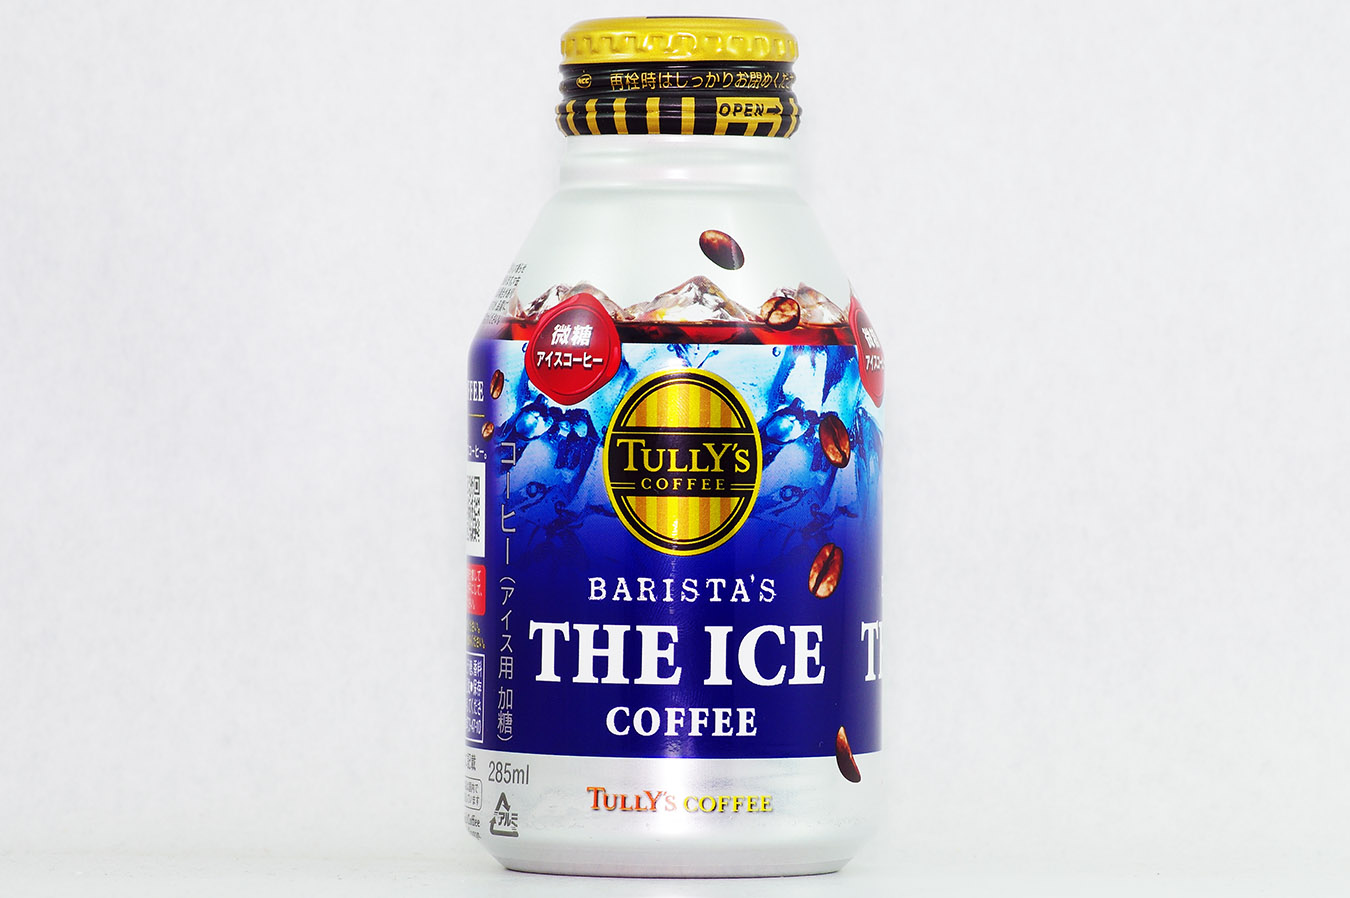 TULLY'S COFFEE BARISTA'S THE ICE COFFEE